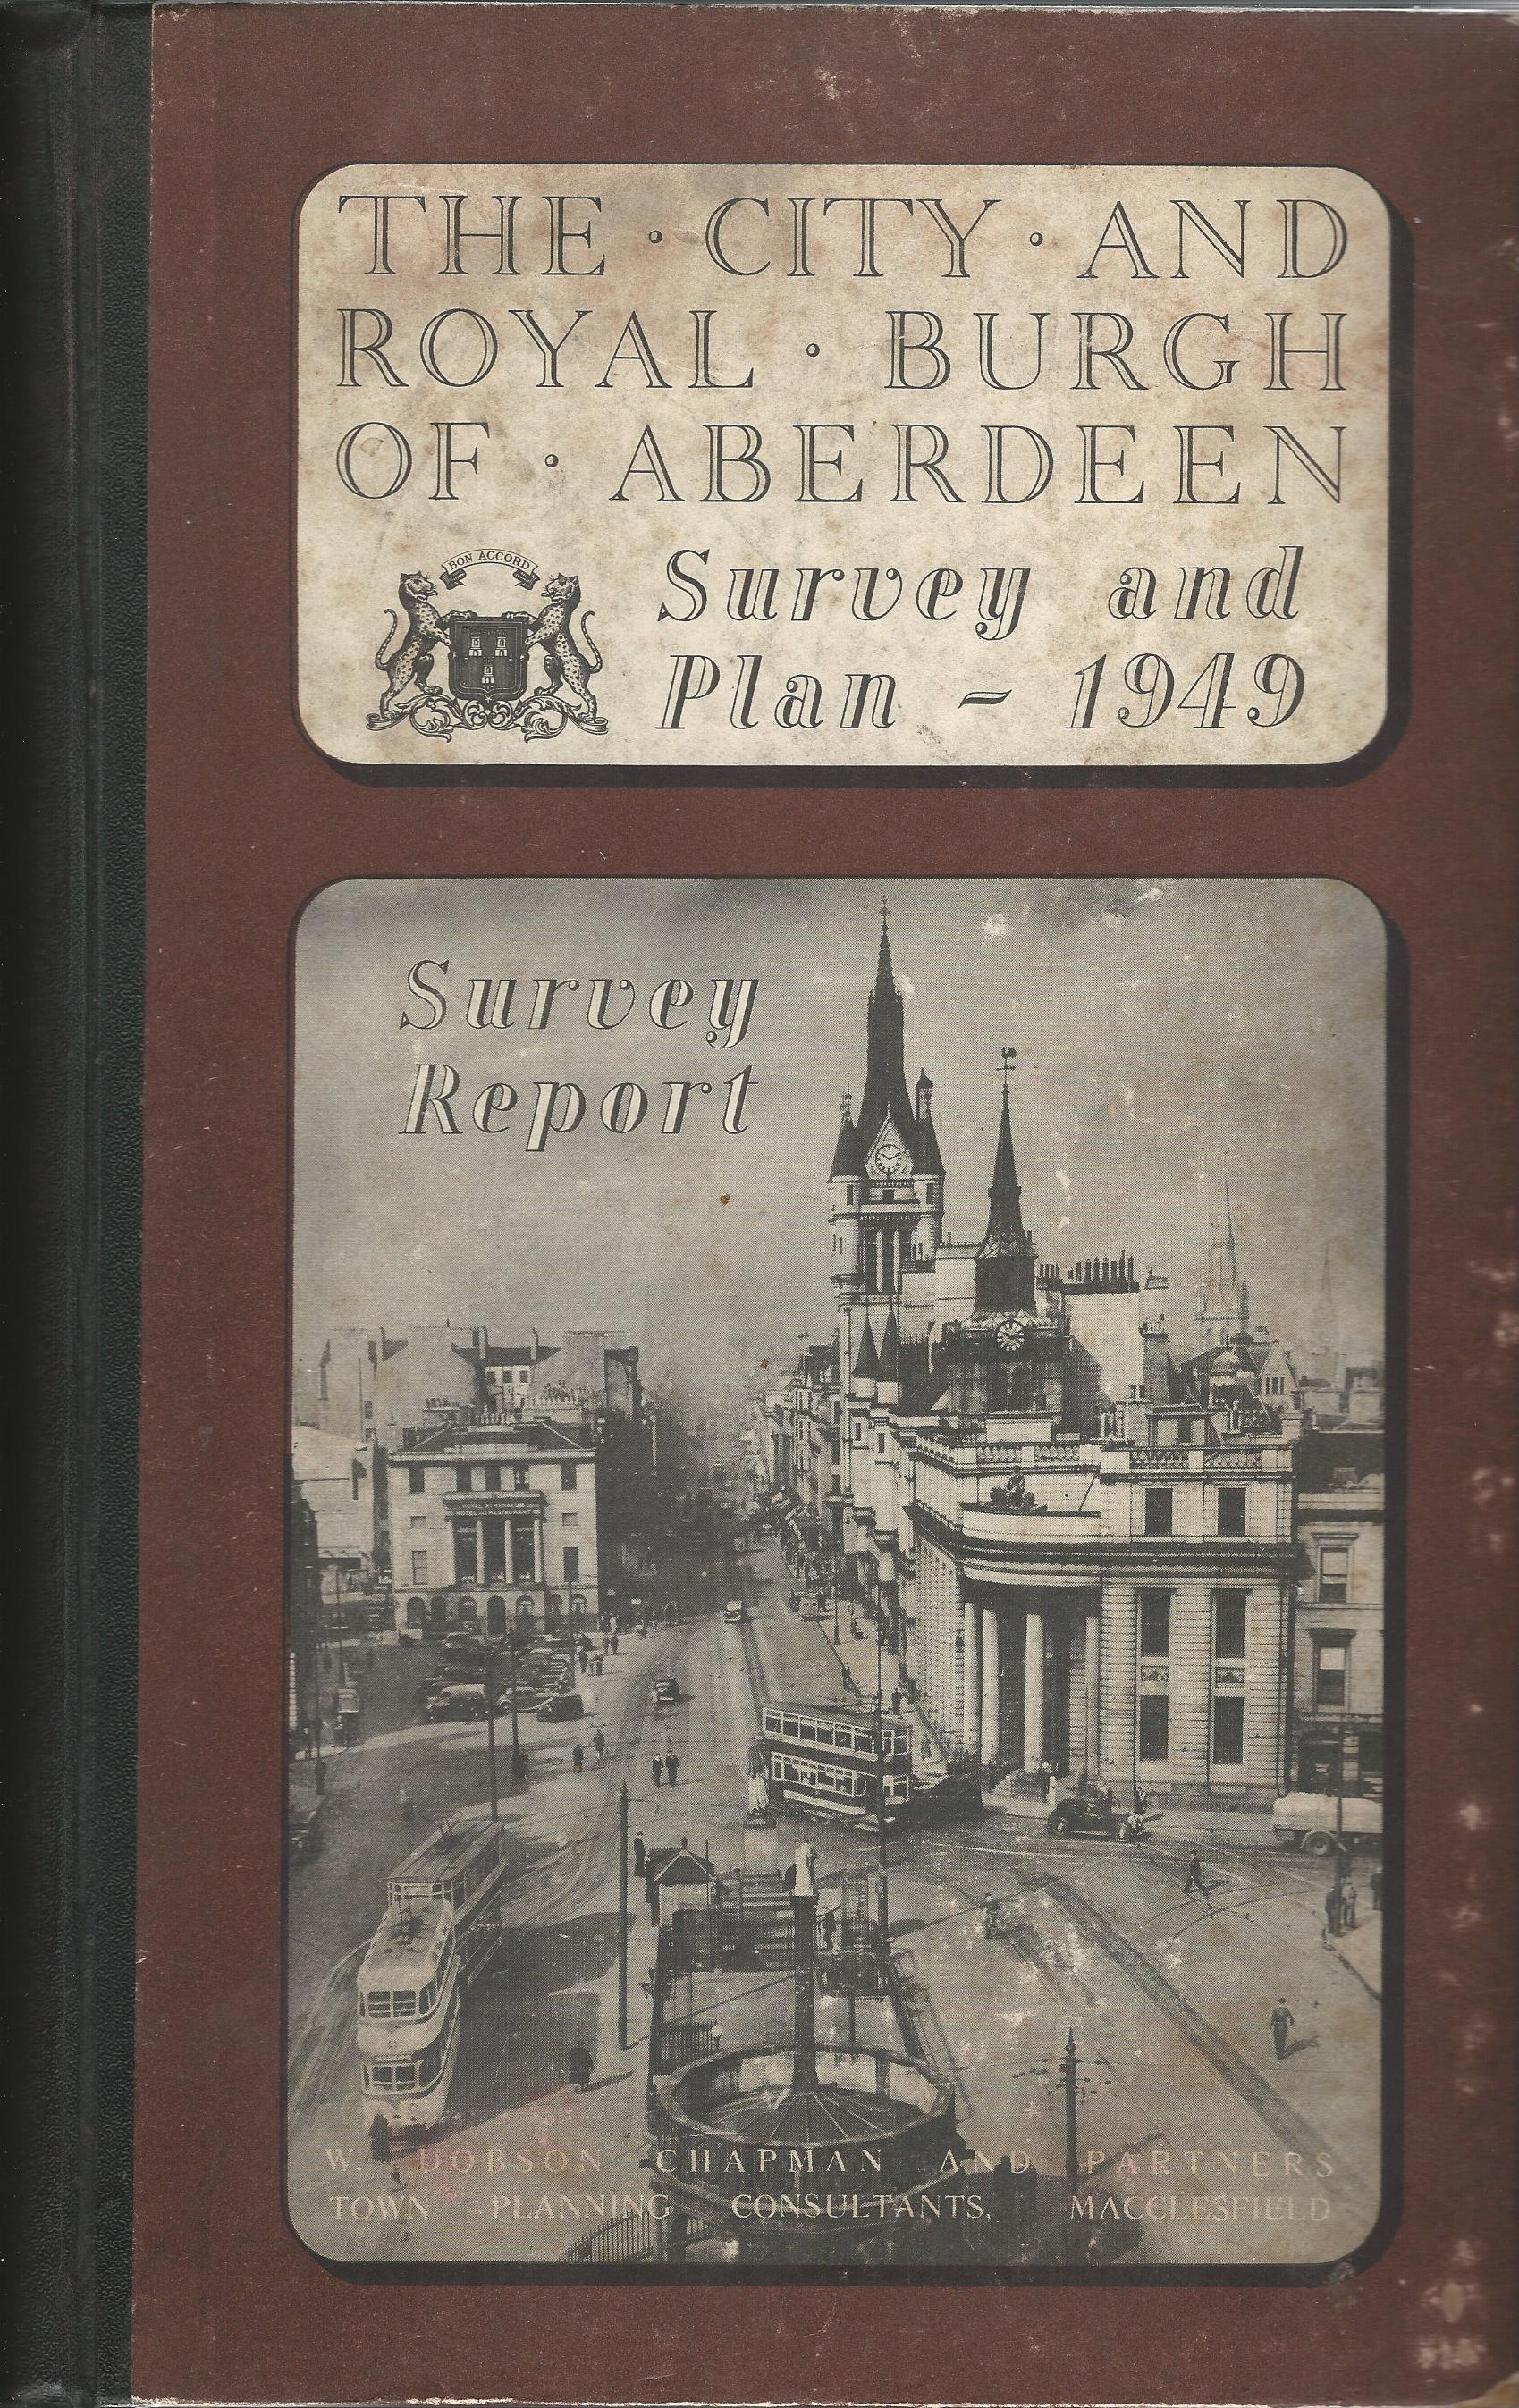 Image for The City and Royal Burgh of Aberdeen Survey and Plan 1949 - Survey Report.